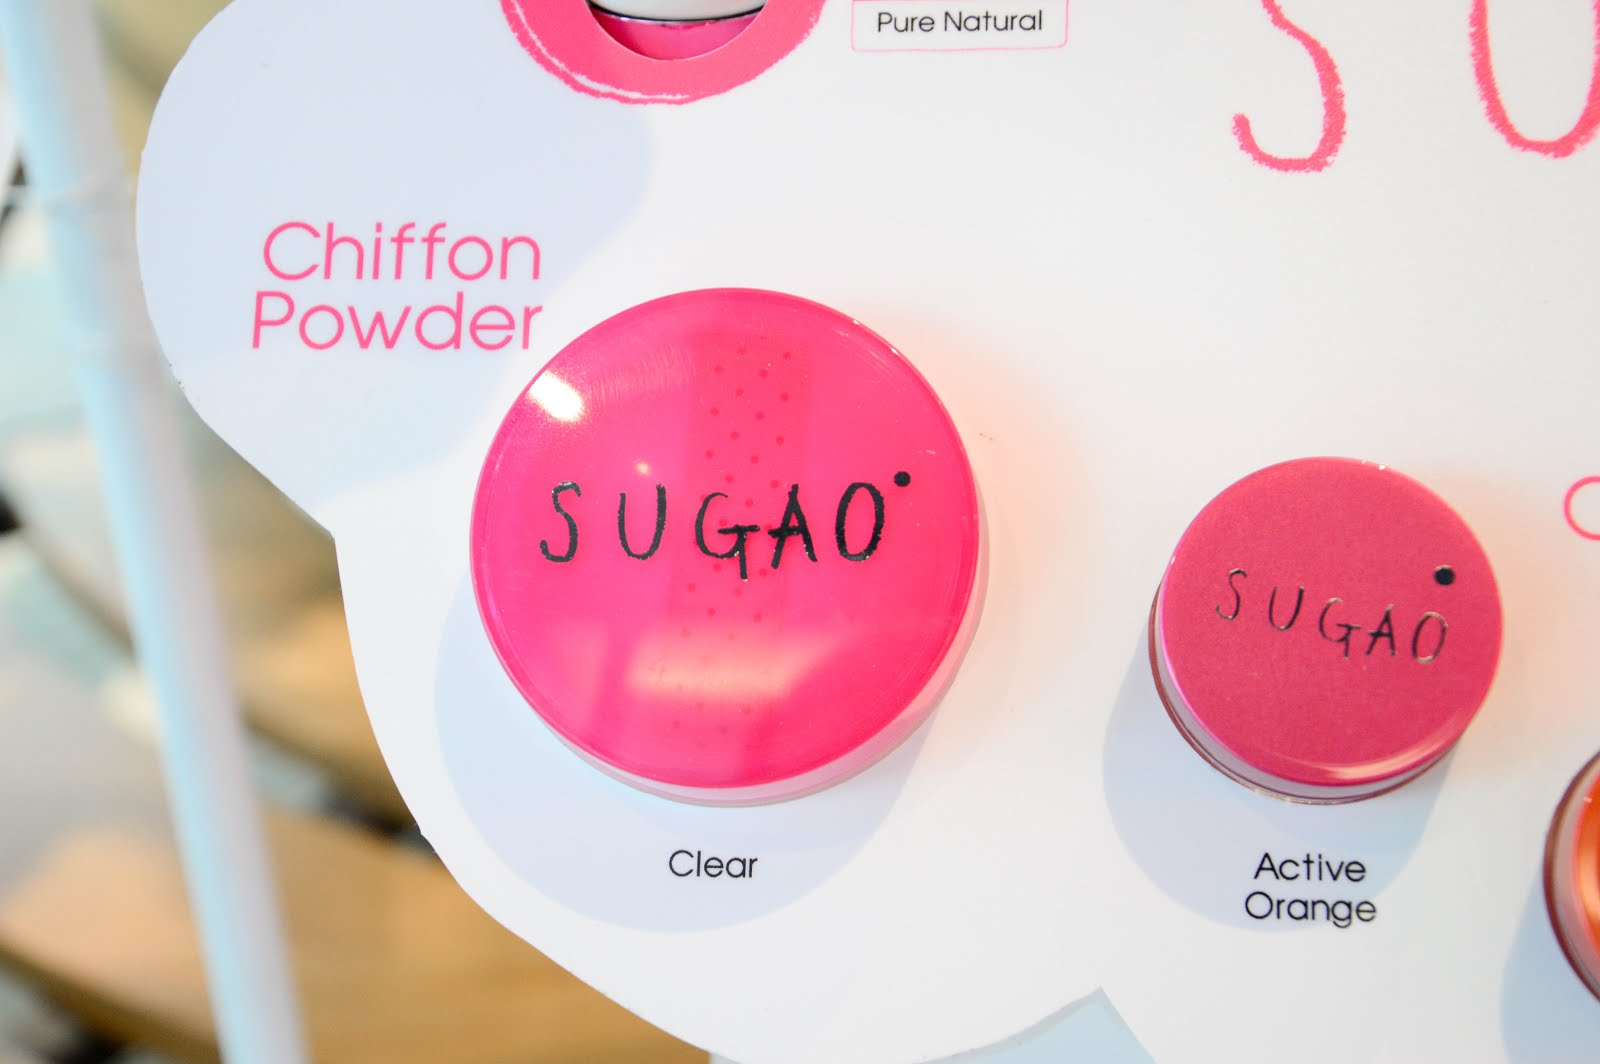 sugao chiffon powder review